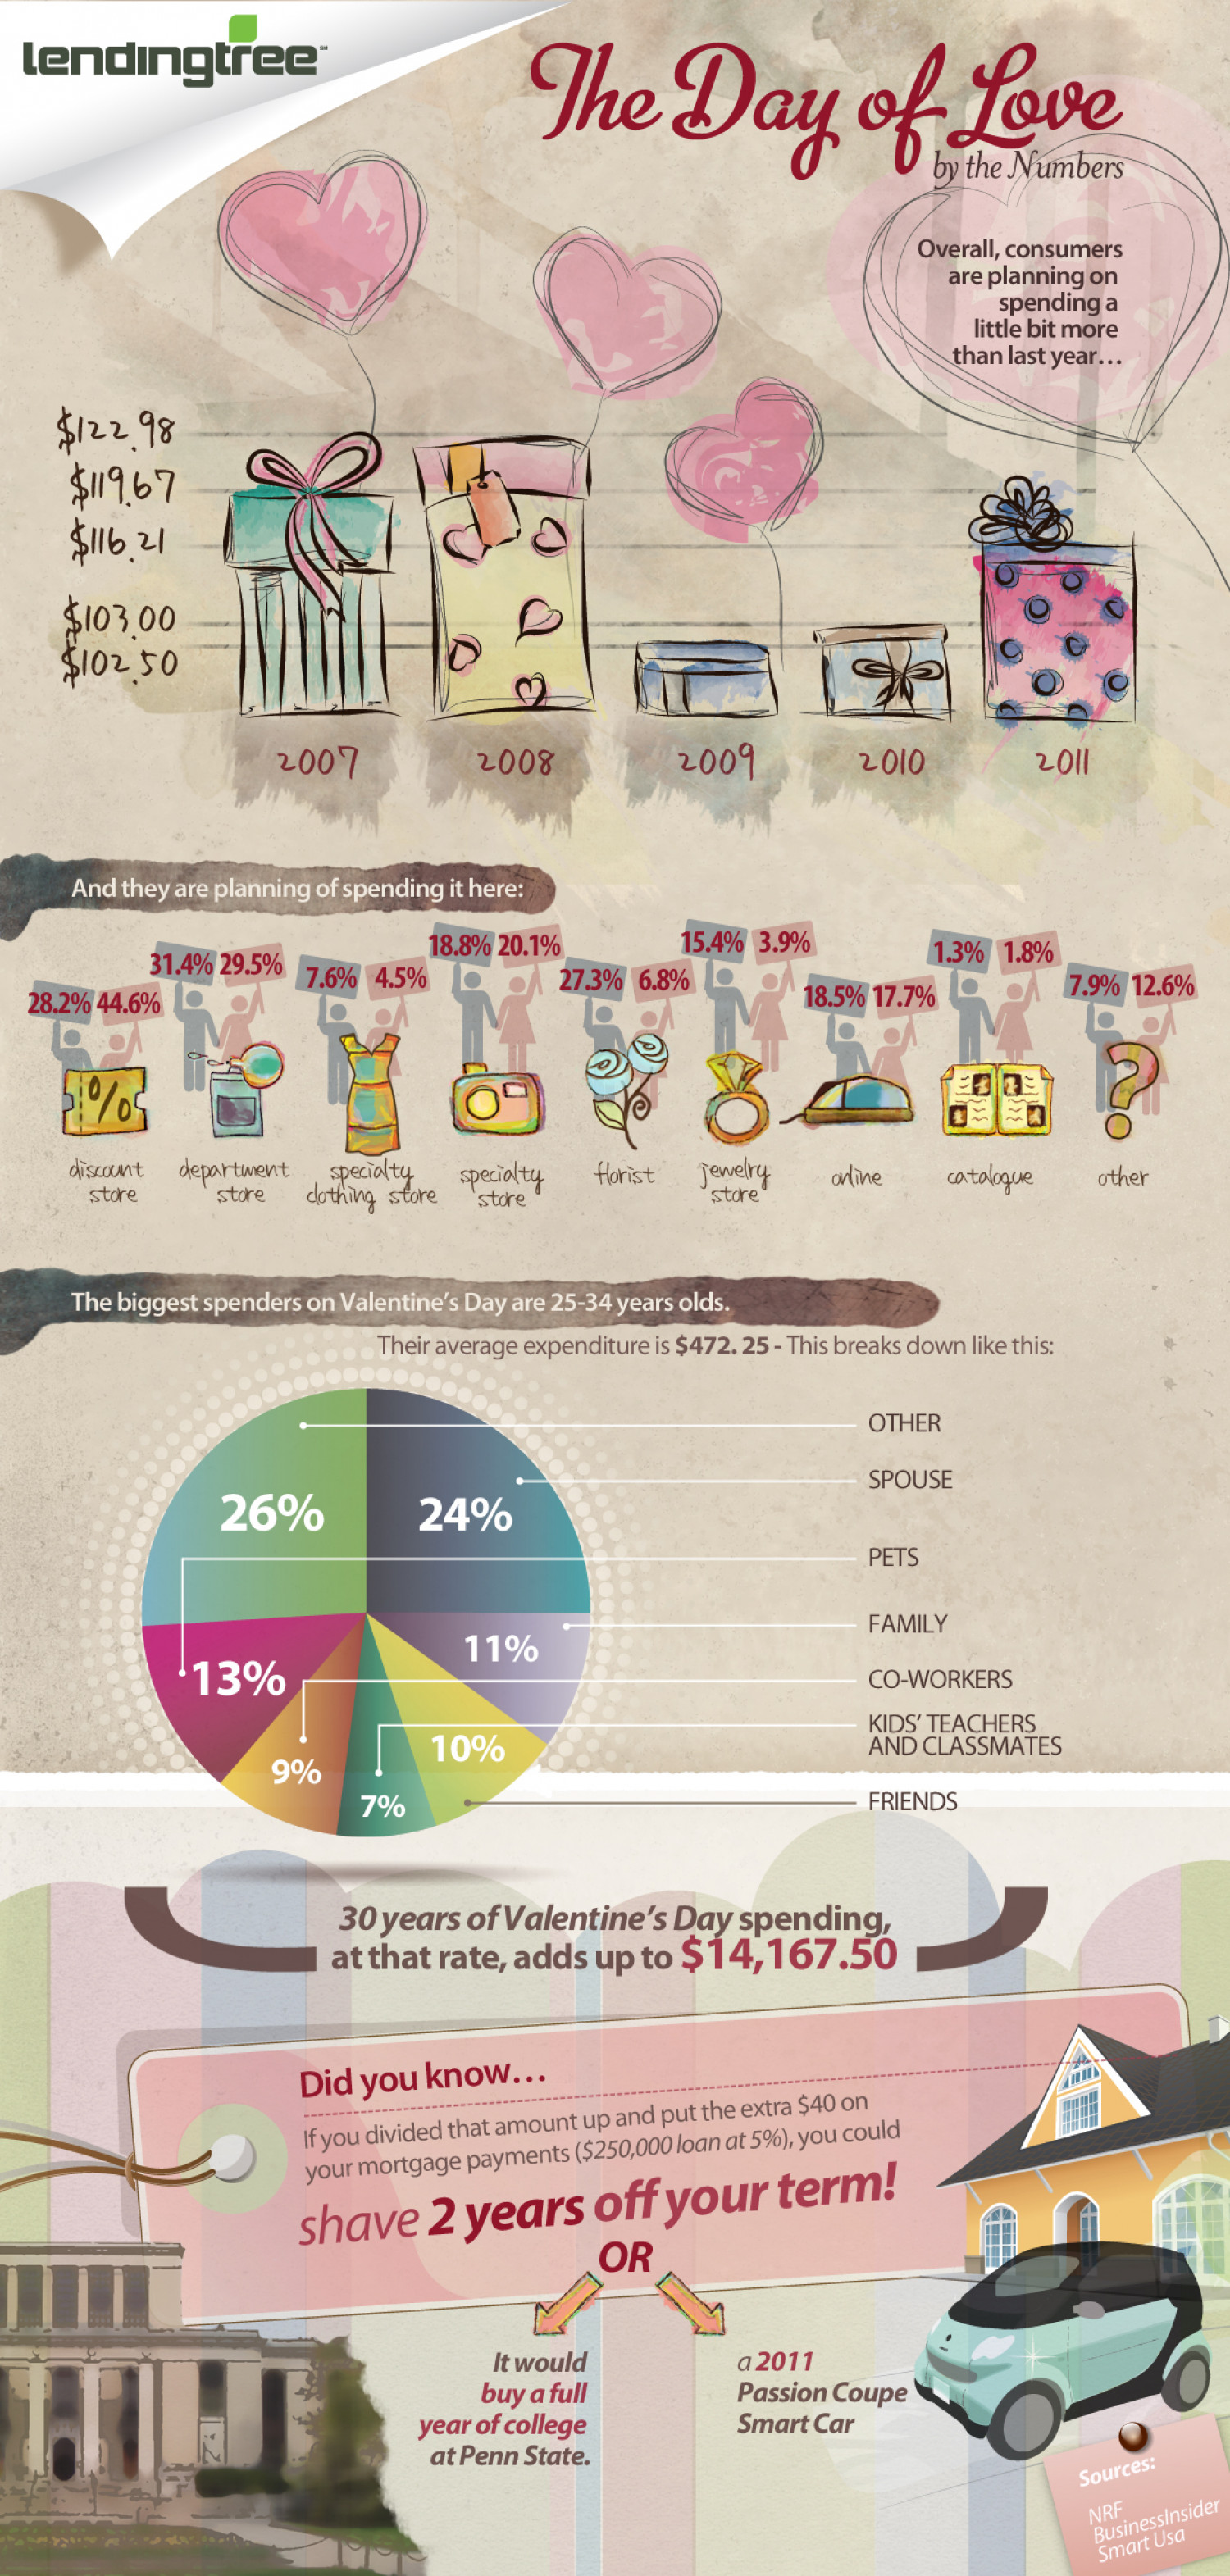 Valentines - The Day of Love by the Numbers Infographic